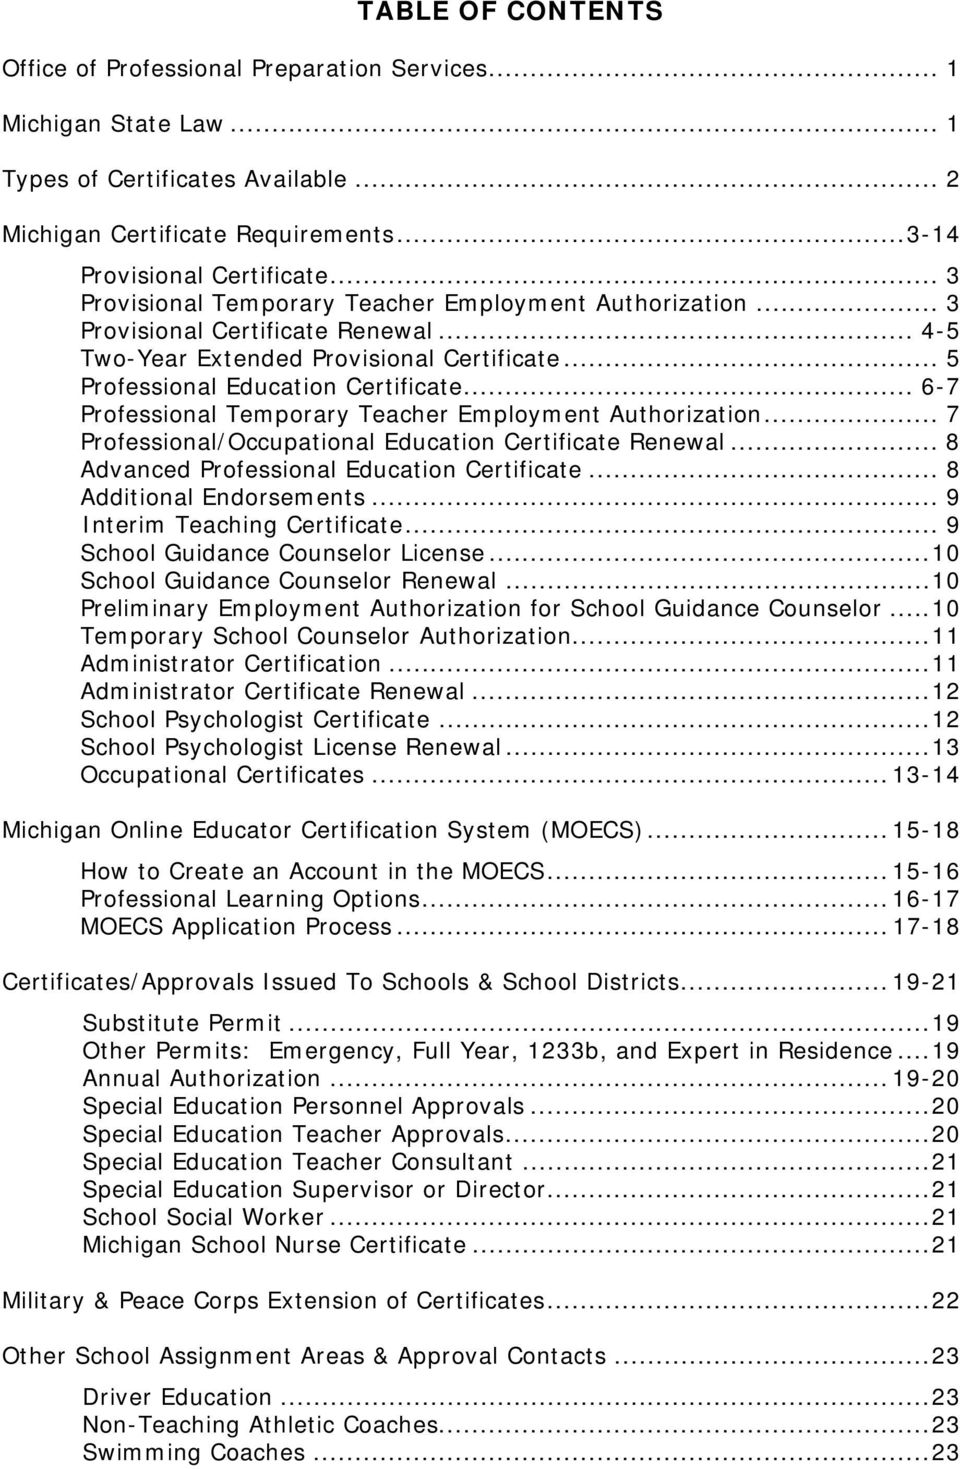 .. 6-7 Professional Temporary Teacher Employment Authorization... 7 Professional/Occupational Education Certificate Renewal... 8 Advanced Professional Education Certificate... 8 Additional Endorsements.